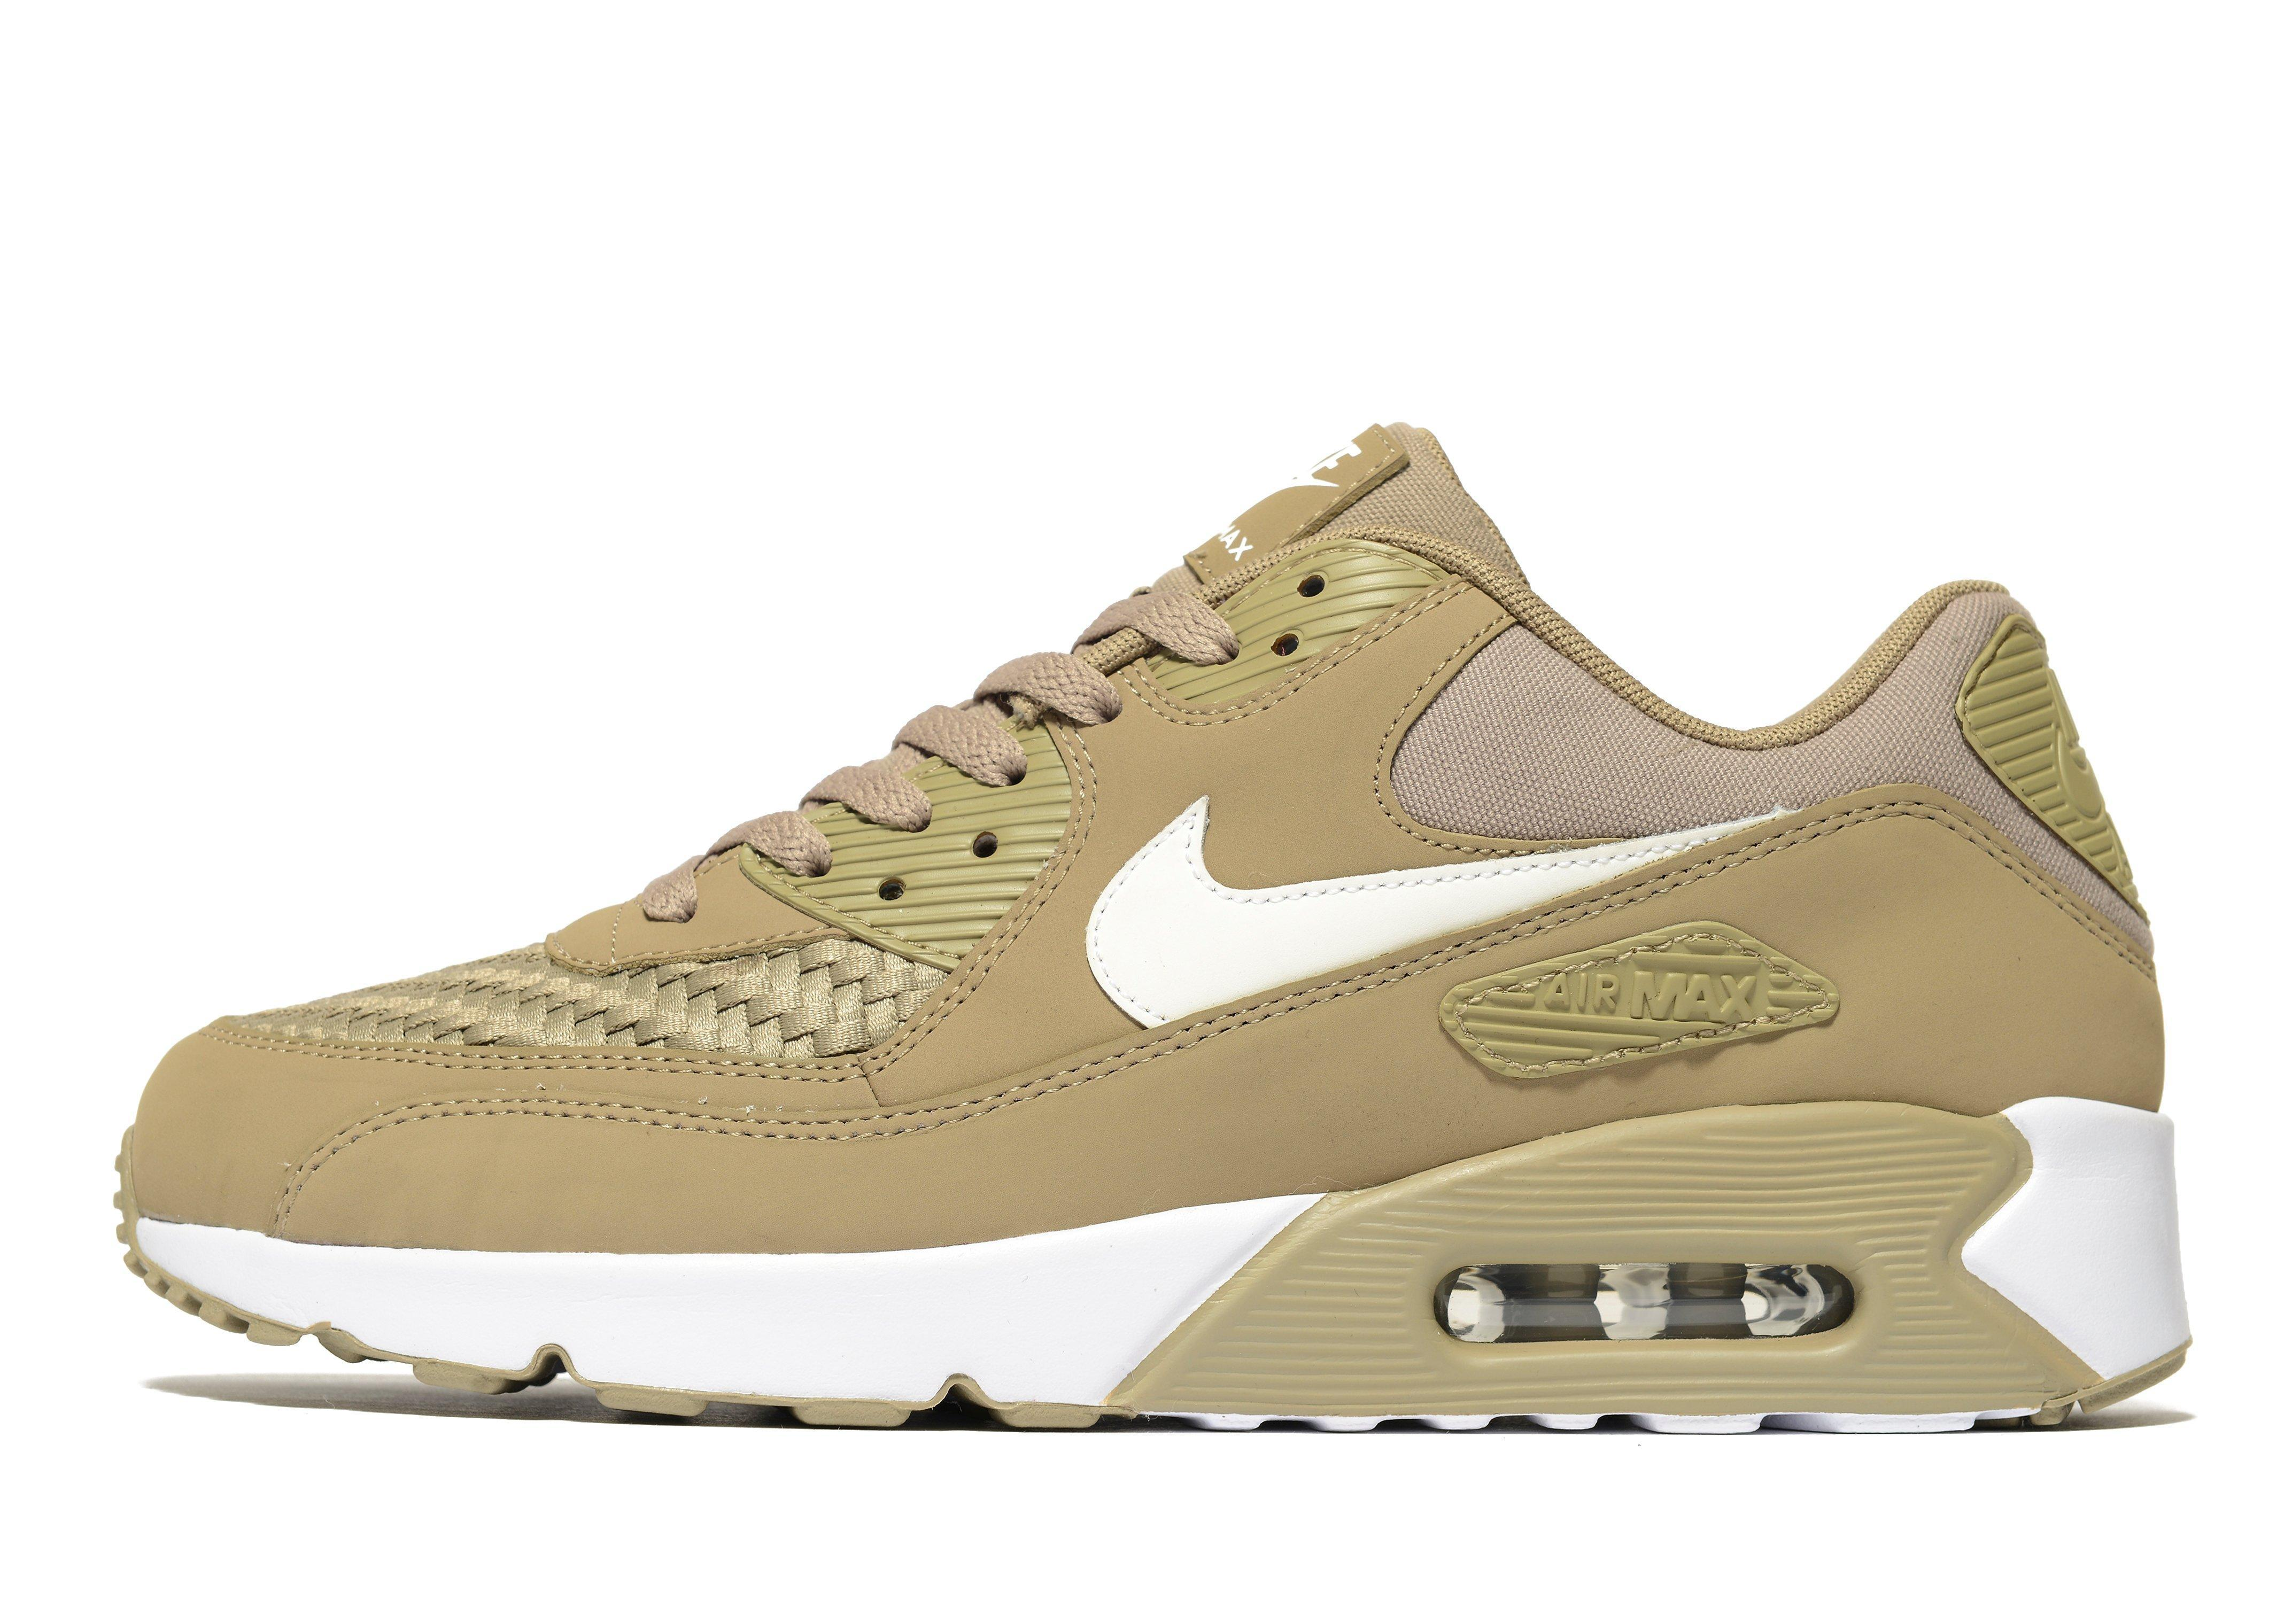 low priced 668c1 86ef2 Gallery. Previously sold at  JD Sports · Men s Air Max 90 Sneakers